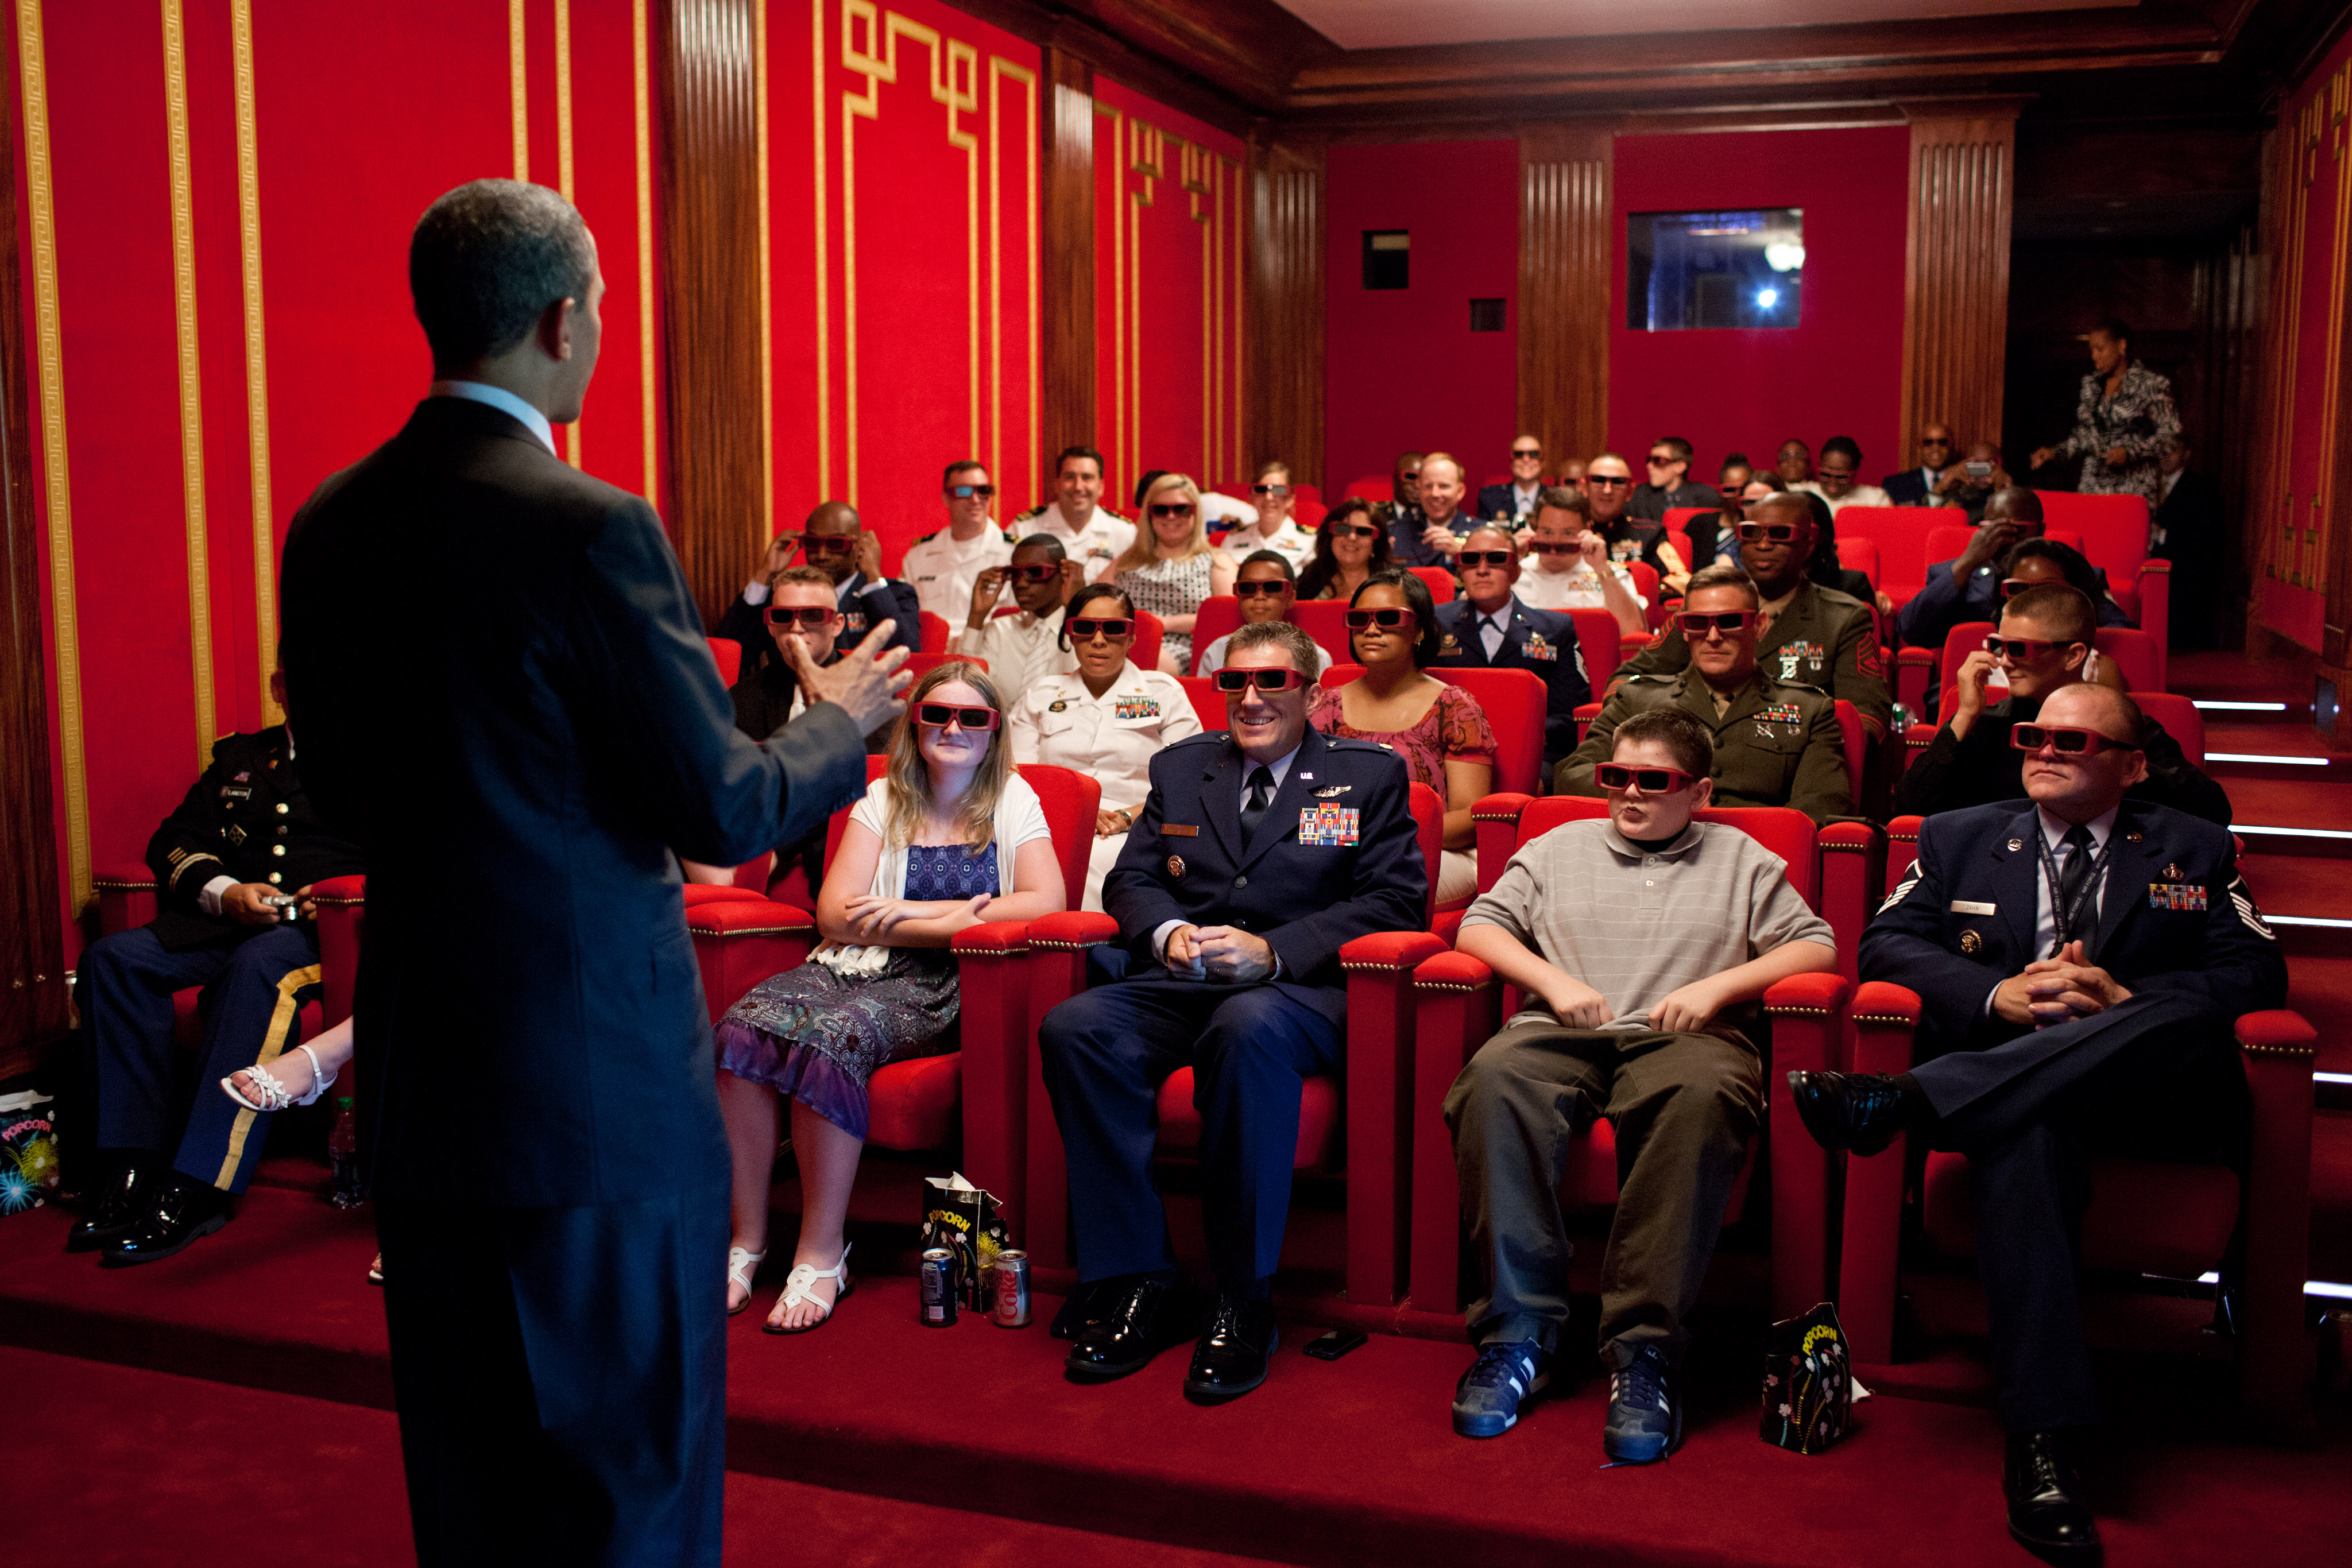 Image Result For Movie Theater Peter